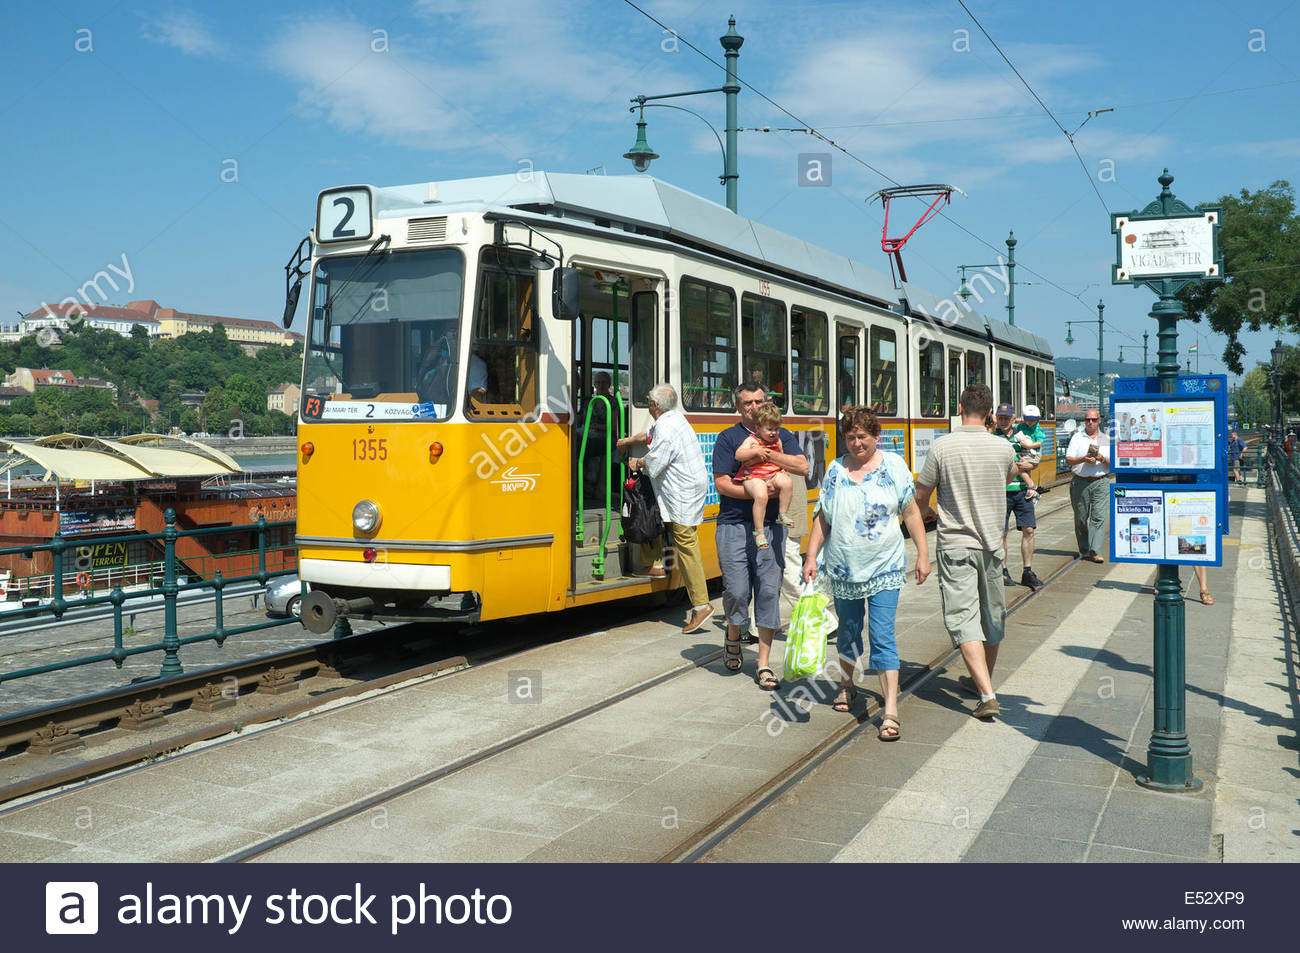 Passengers alight and embark at the Vigadó tér Tram Stop, in Pest, Budapest, Hungary. Stock Photo